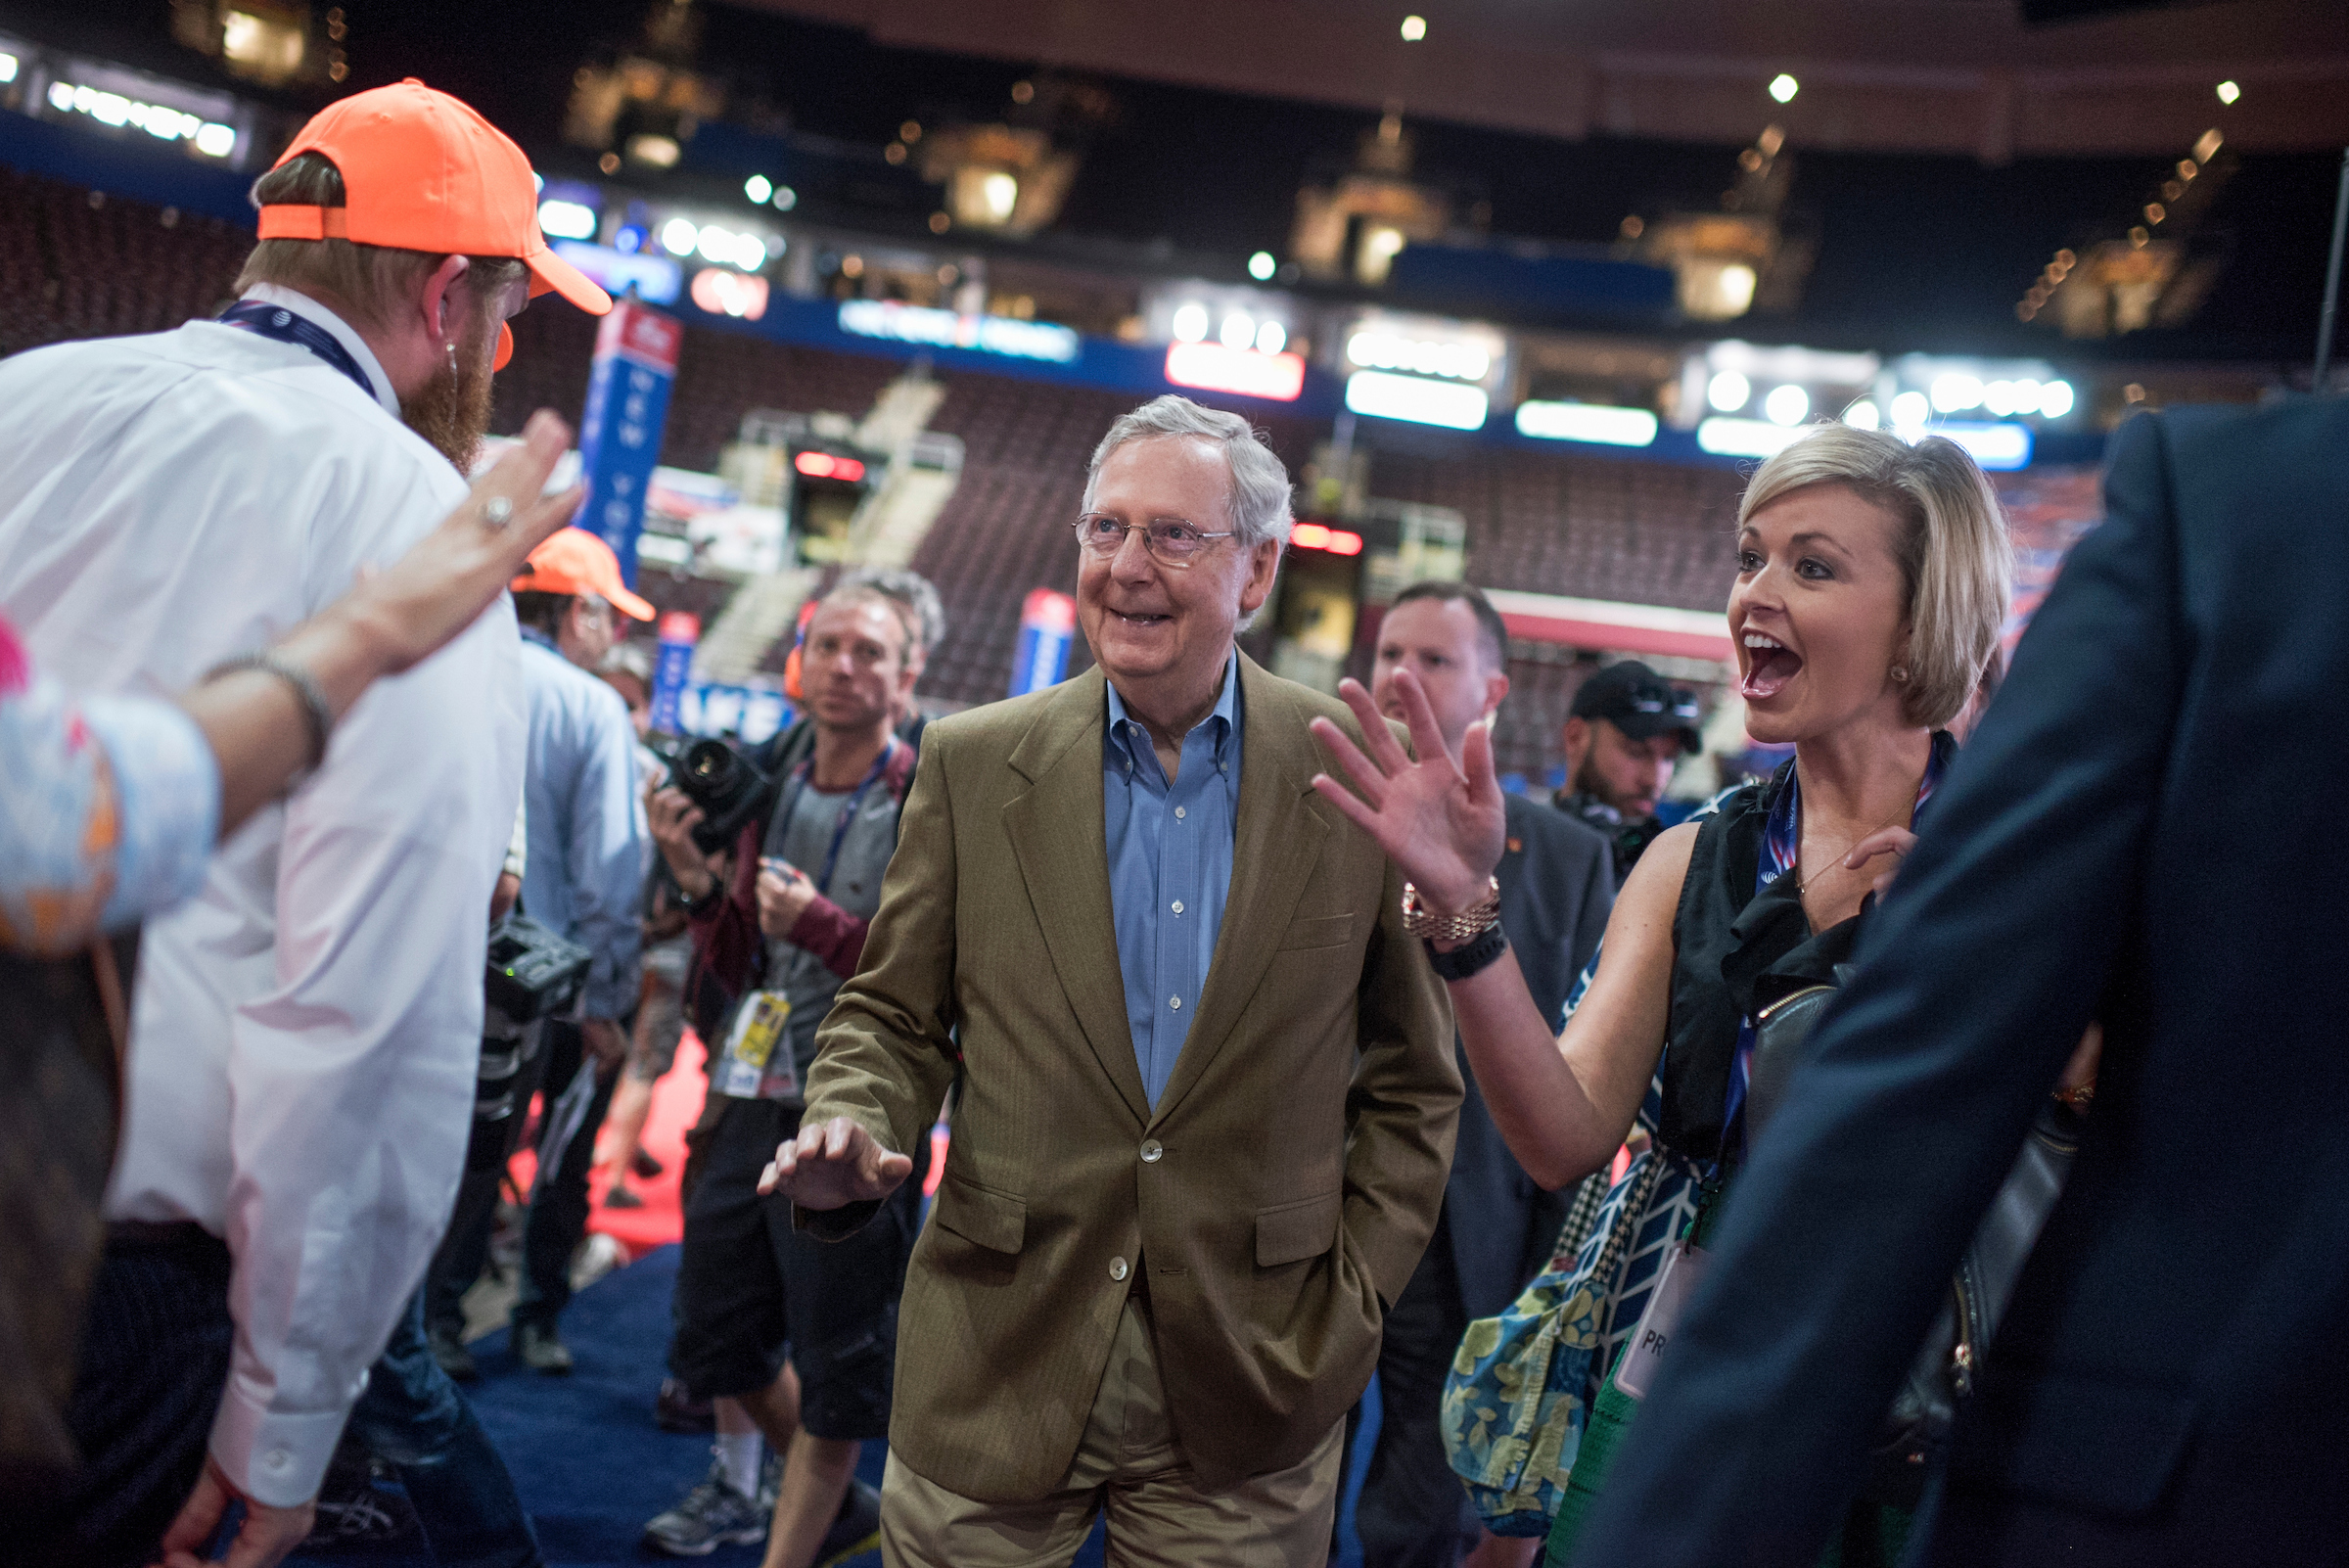 Senate Majority Leader Mitch McConnell, center, talks with guests at the Republican convention last week. (Tom Williams/CQ Roll Call)